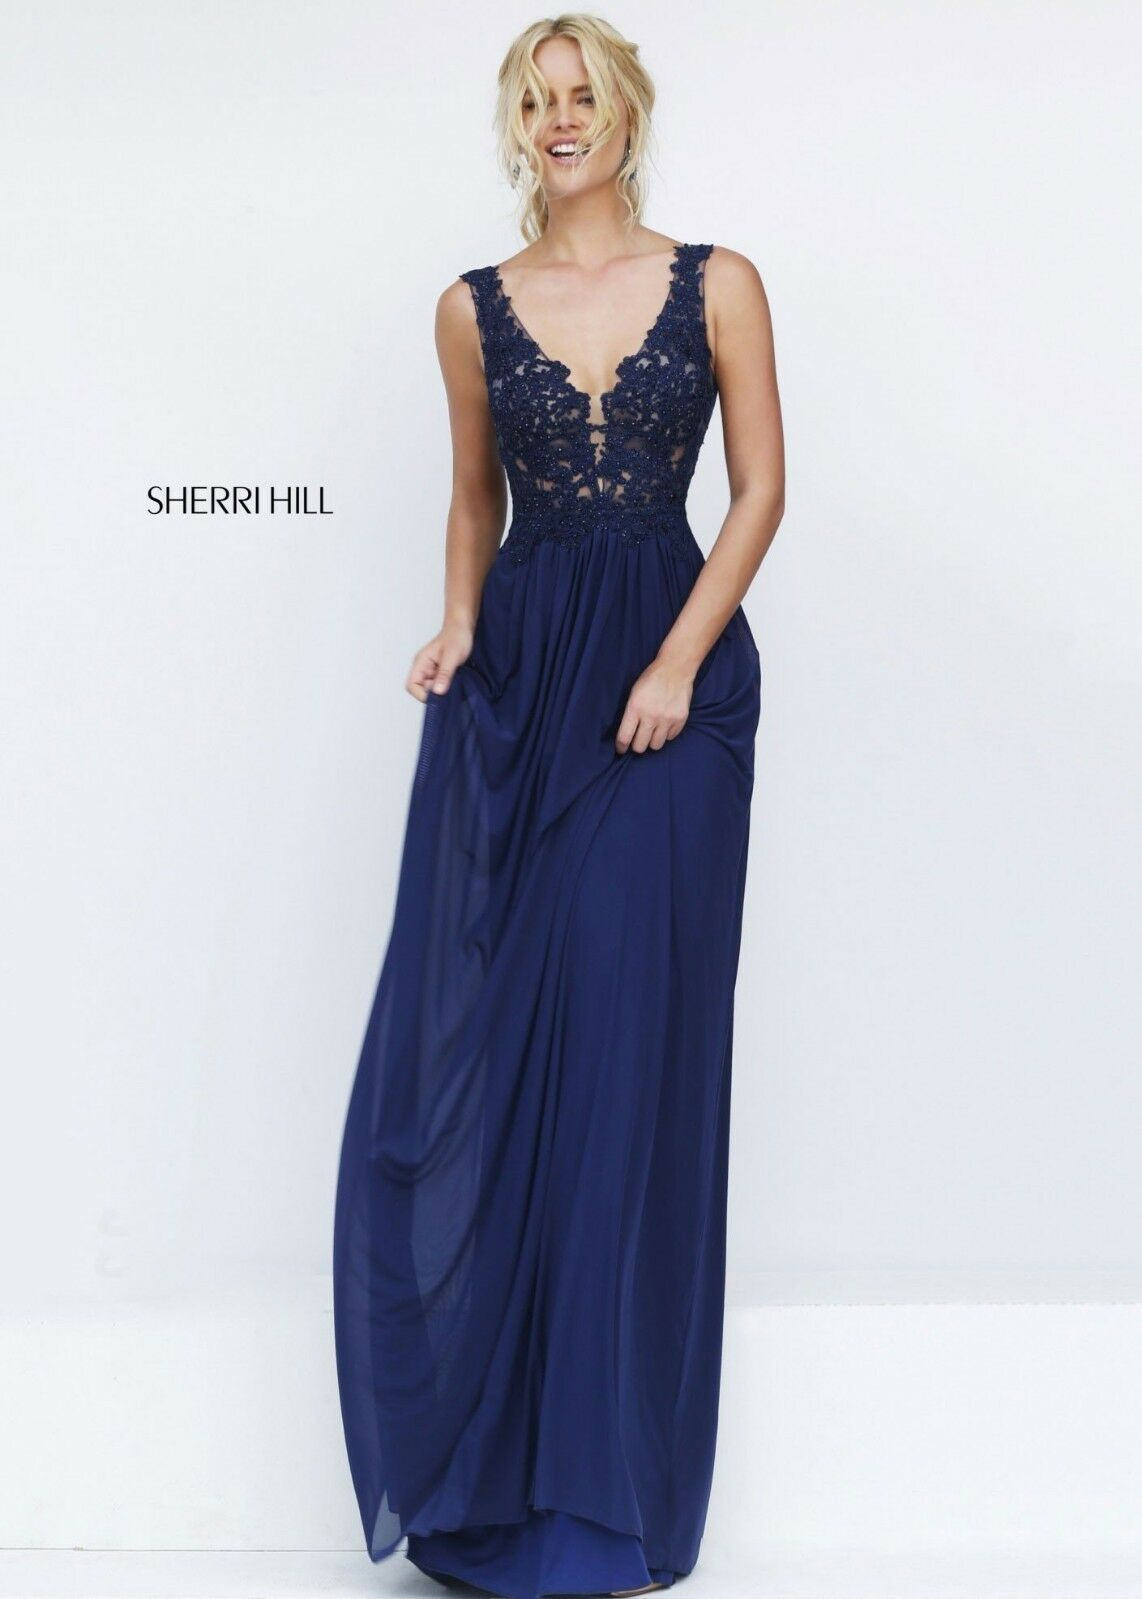 NWT Sherri Hill Navy bluee Lace Flower Elegant Ball Gown Prom Dress Size 00